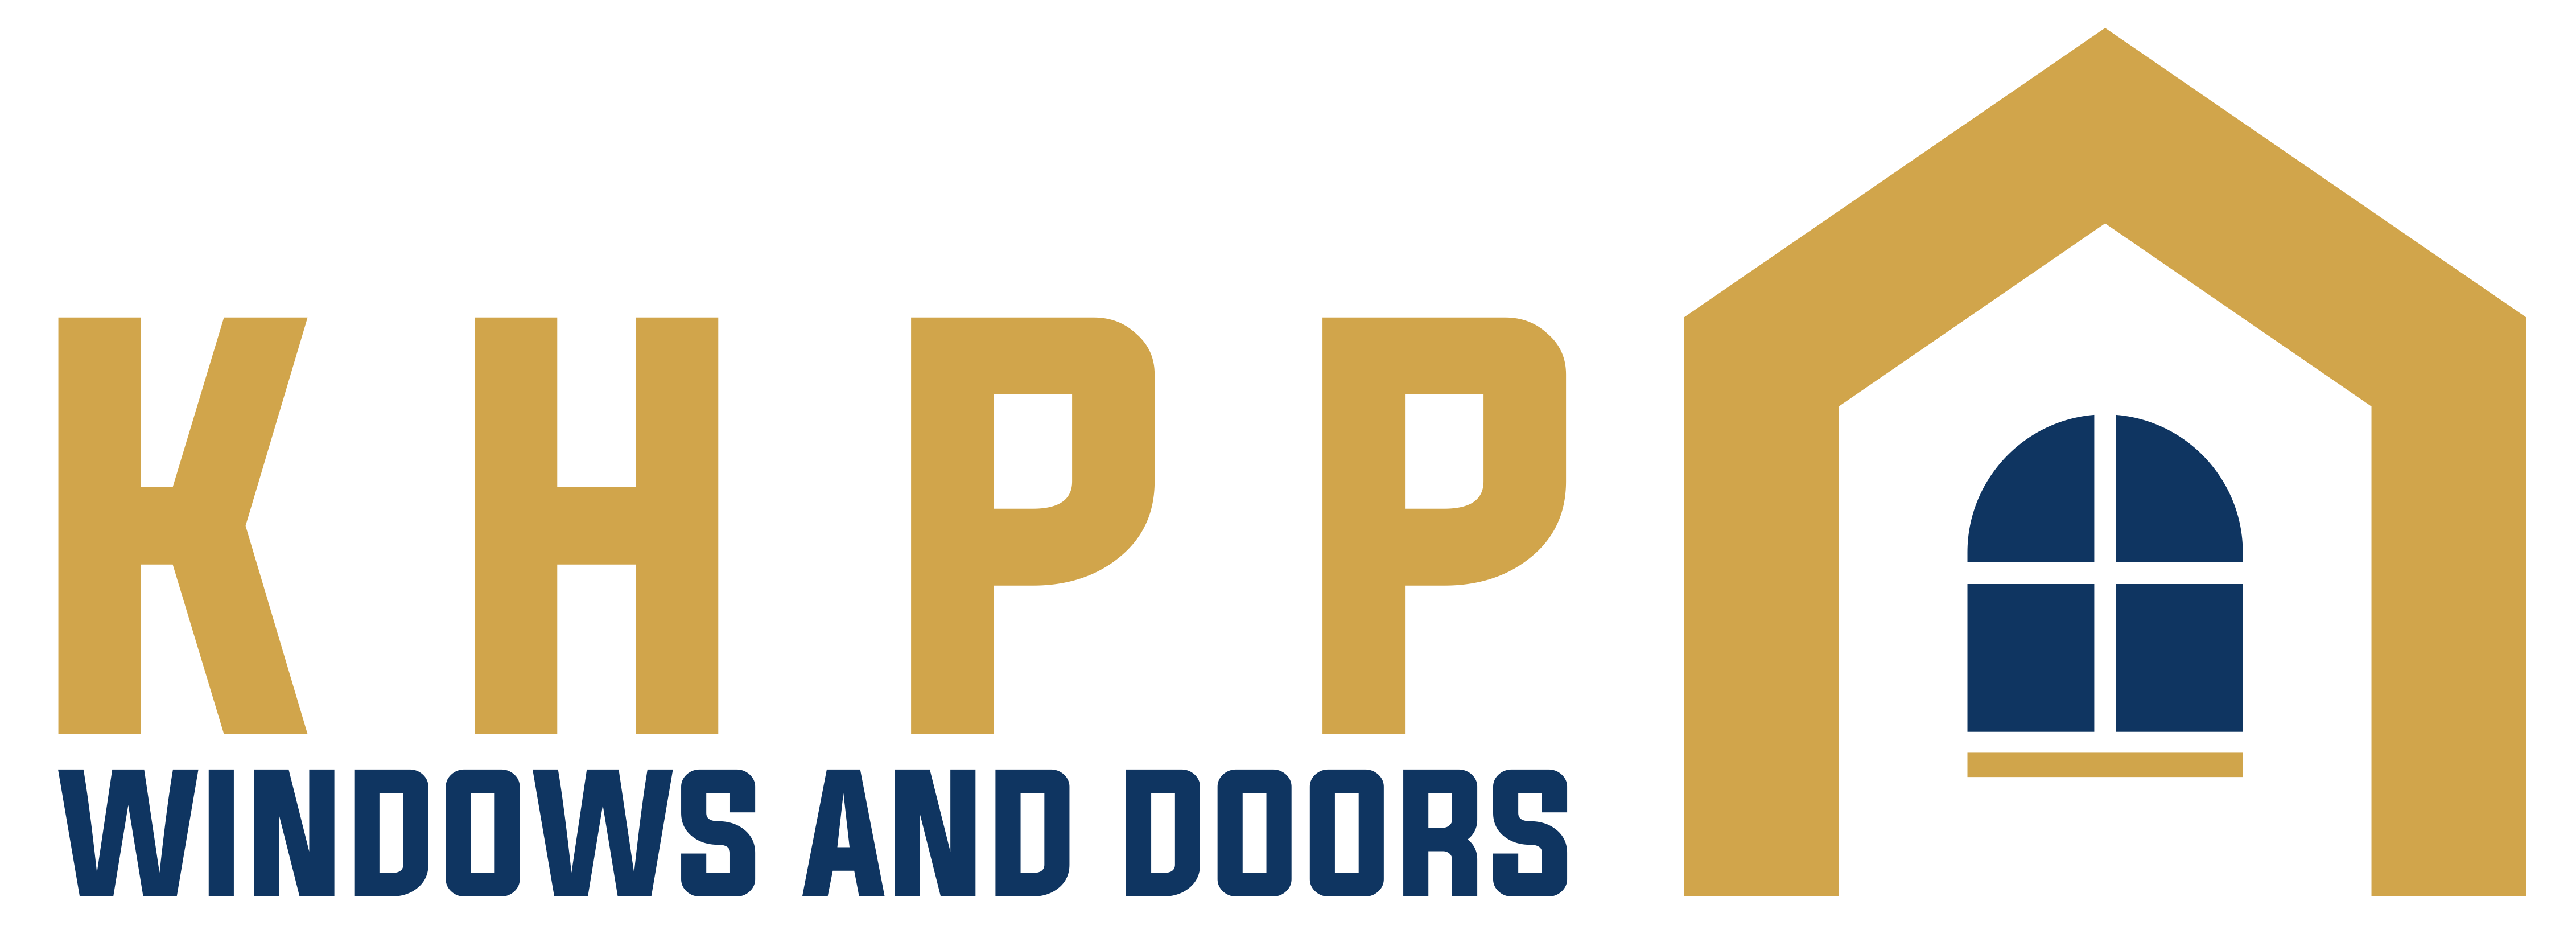 KHPP Windows and Doors